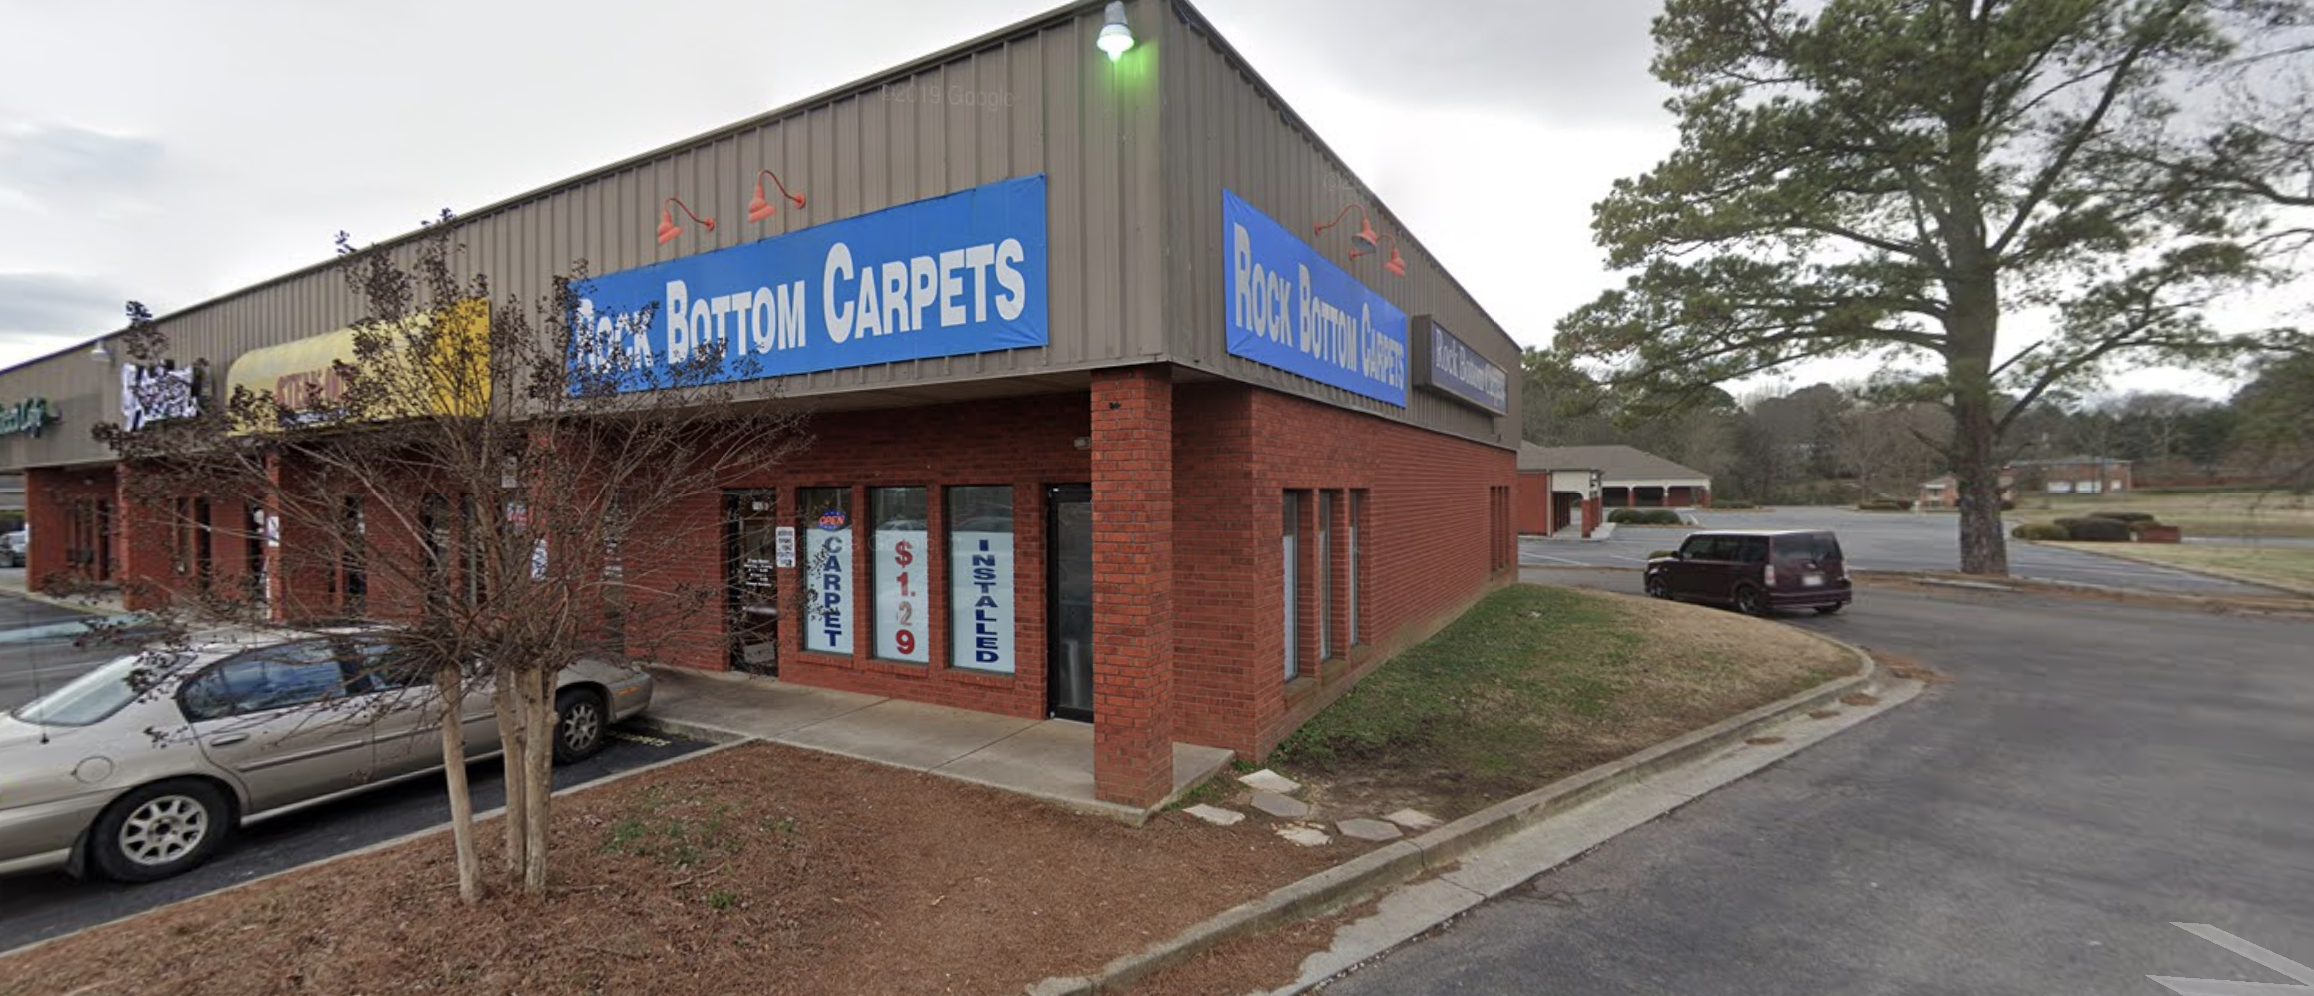 Rock Bottom Carpets - 1000 Beltline Rd SW, Decatur, AL 35601